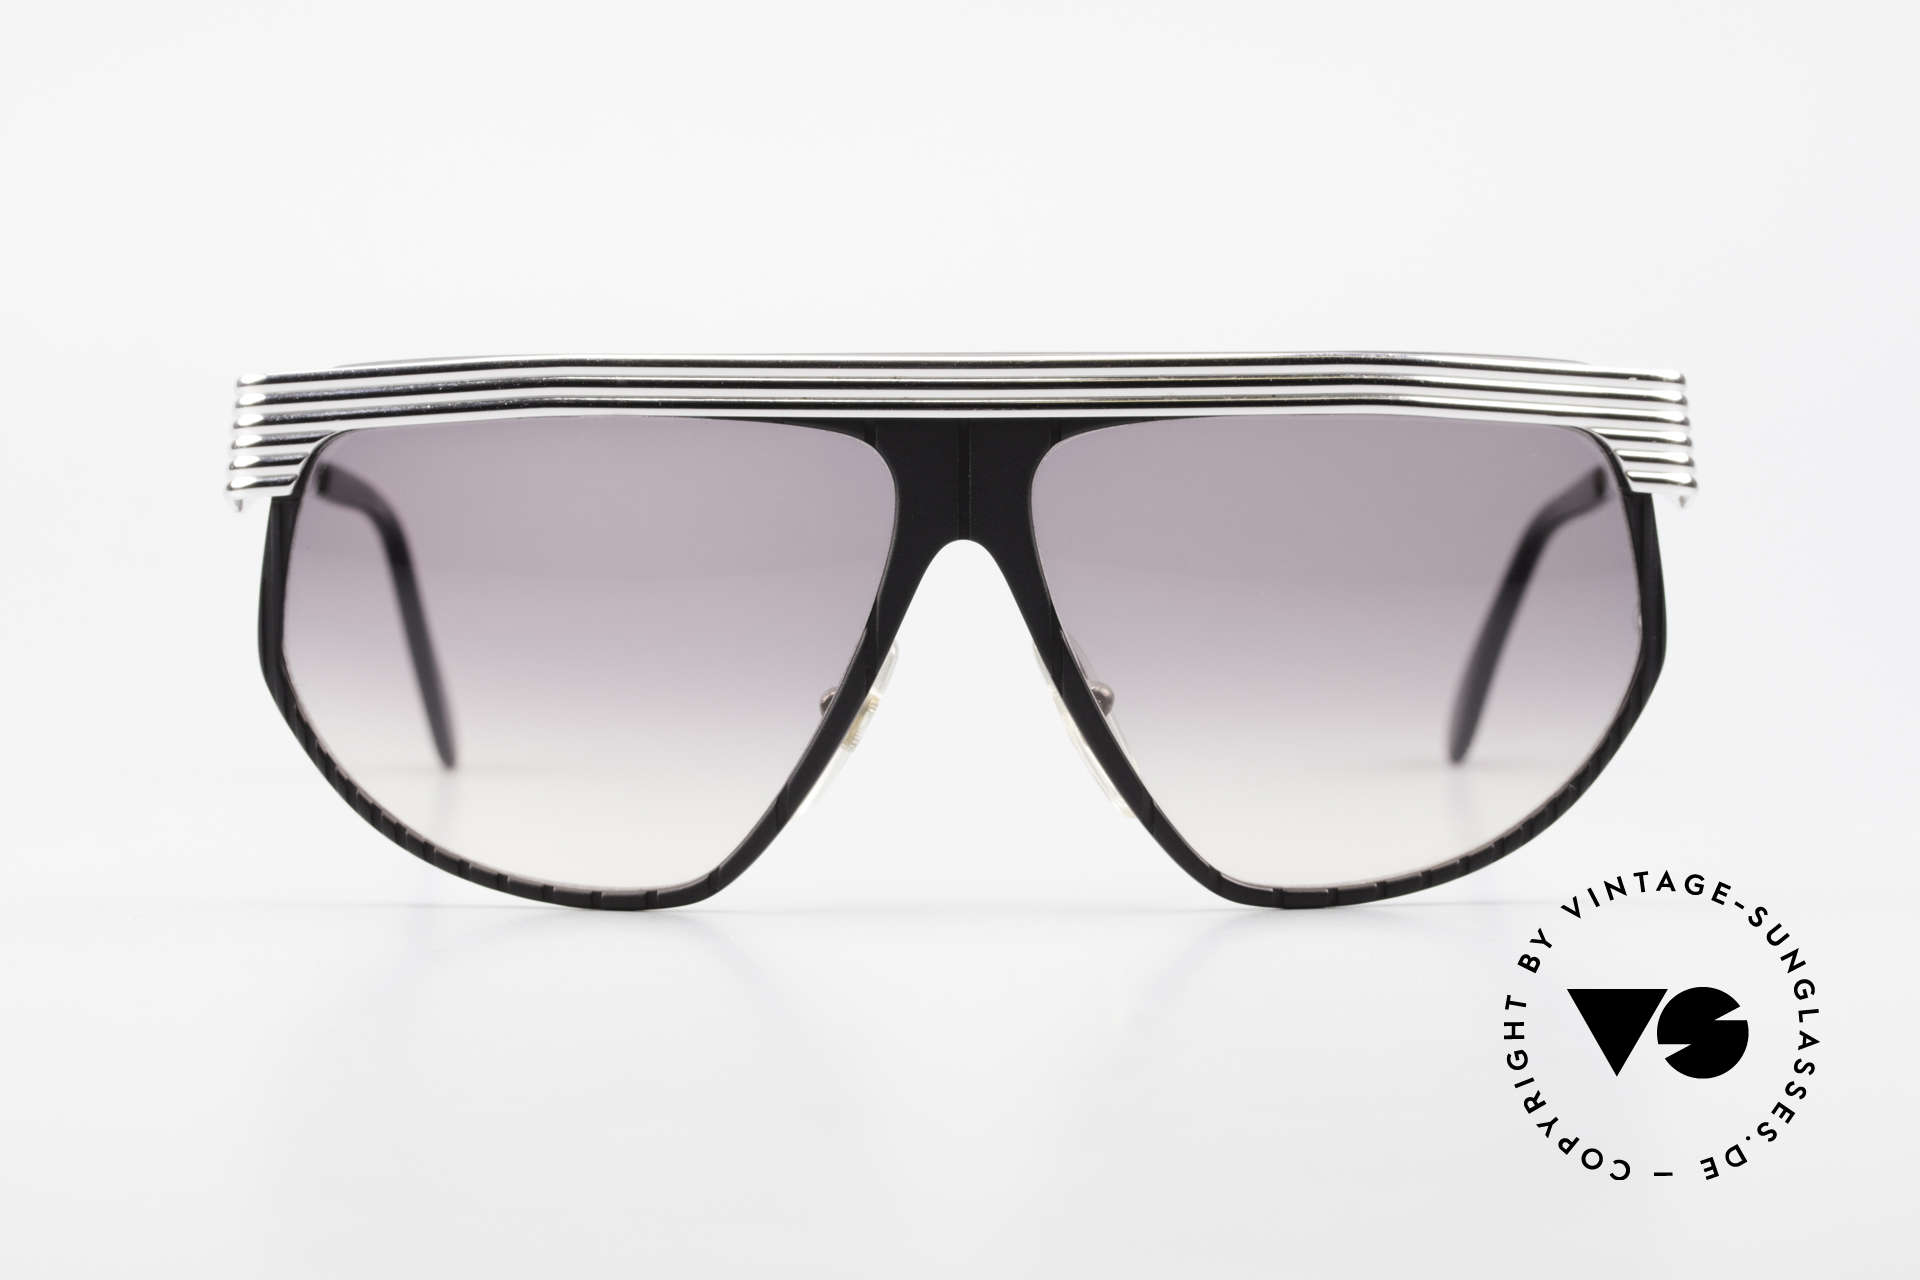 Alpina G86 No Retro Shades True 1980's, conspicuous frame design with ornamenting details, Made for Men and Women